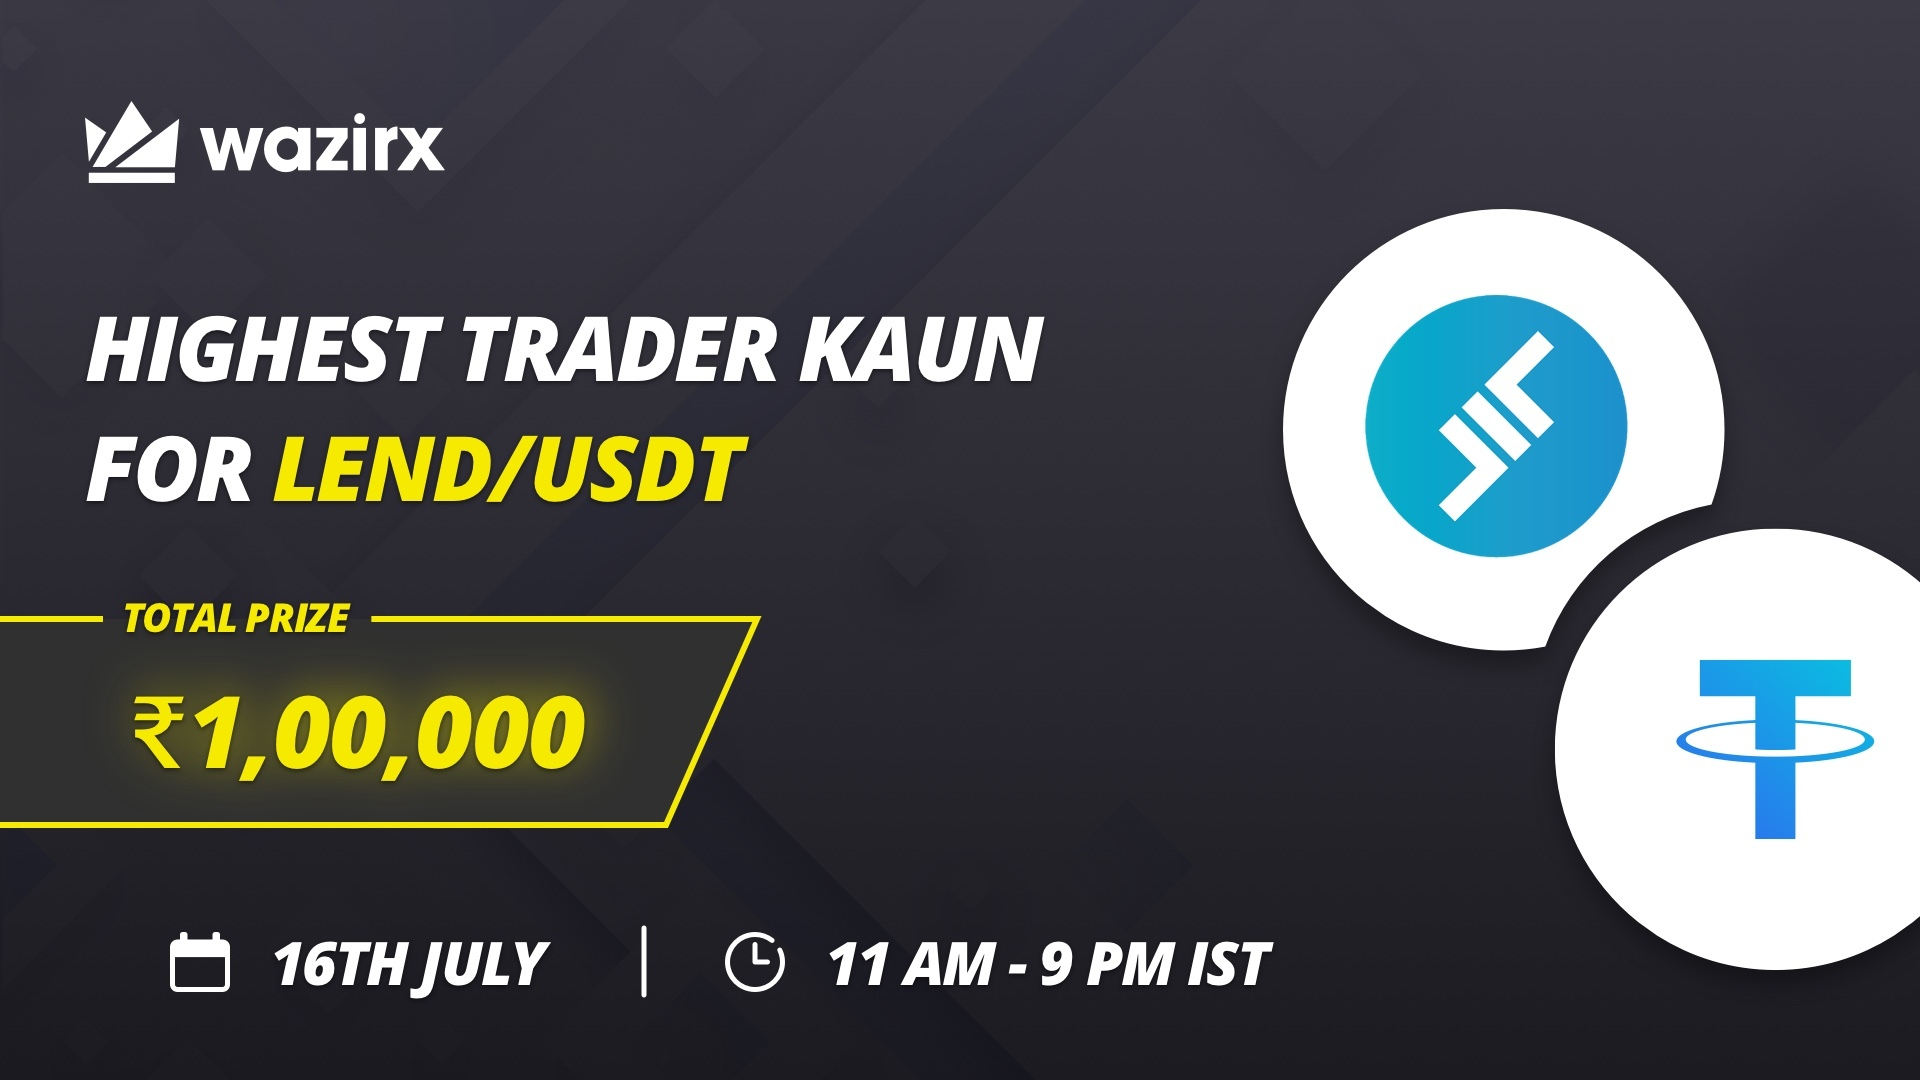 Highest Trader Kaun for LEND/USDT